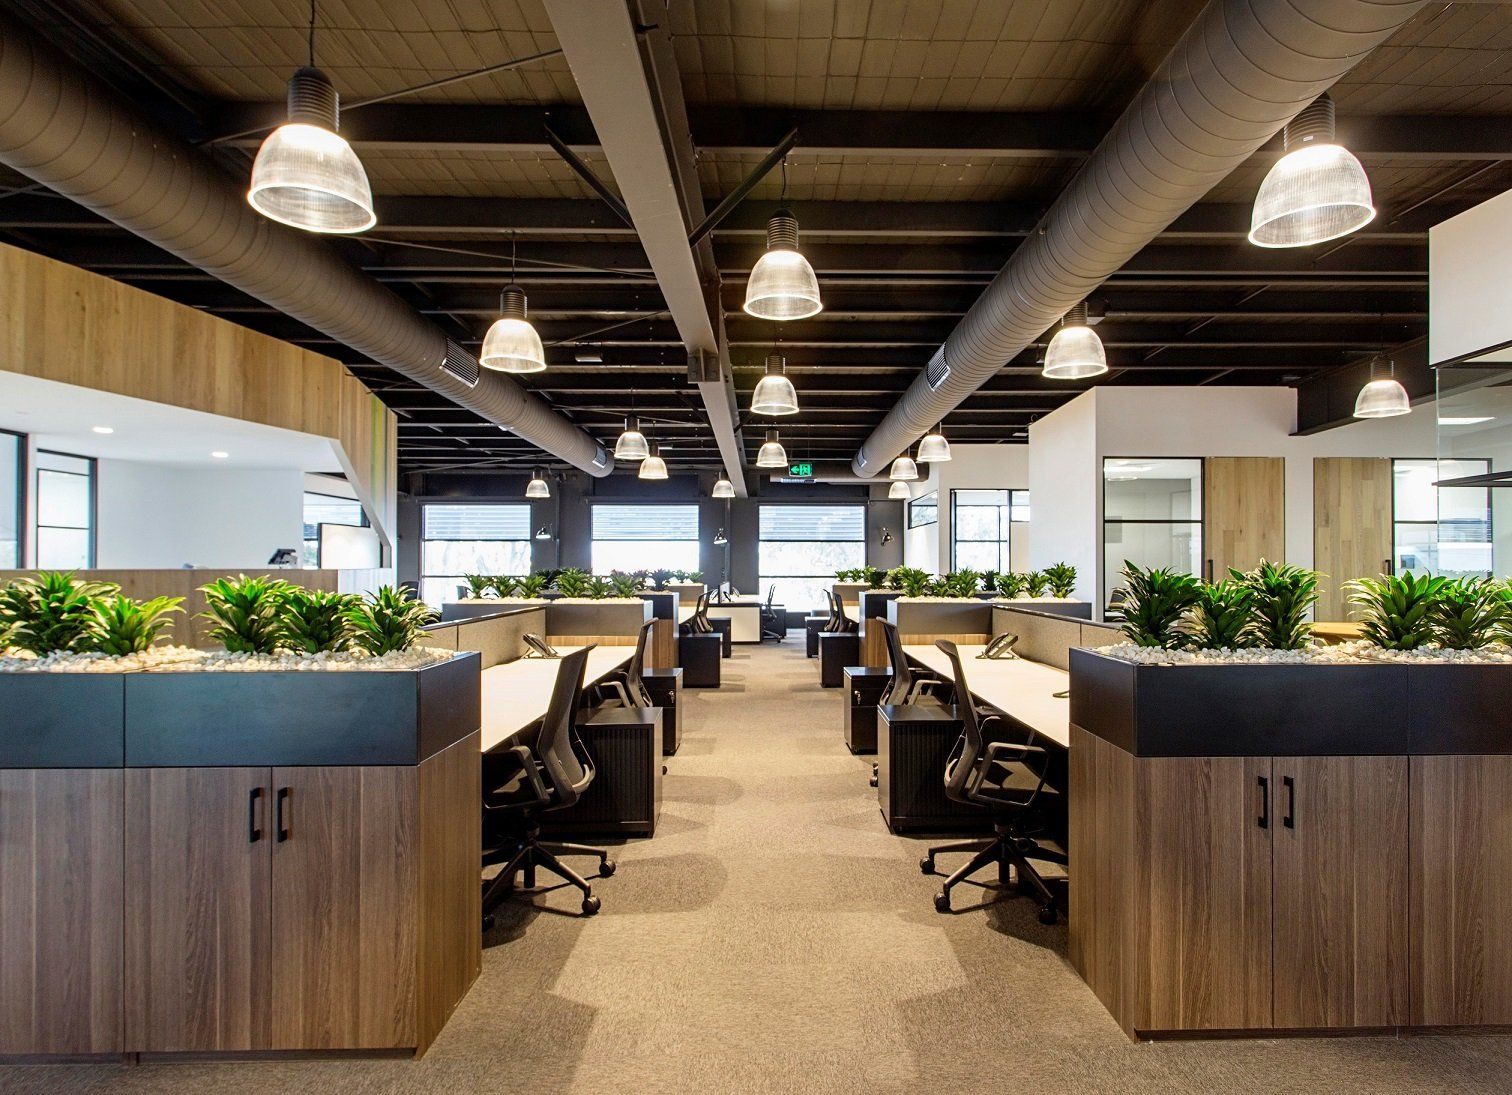 Corporate Office Design Ideas share and enjoy Cameron Industrial Offices Melbourne Office Snapshots Corporate Offices Corporate Interiorsindustrial Office Designoffice Layoutsoffice Ideasdesign